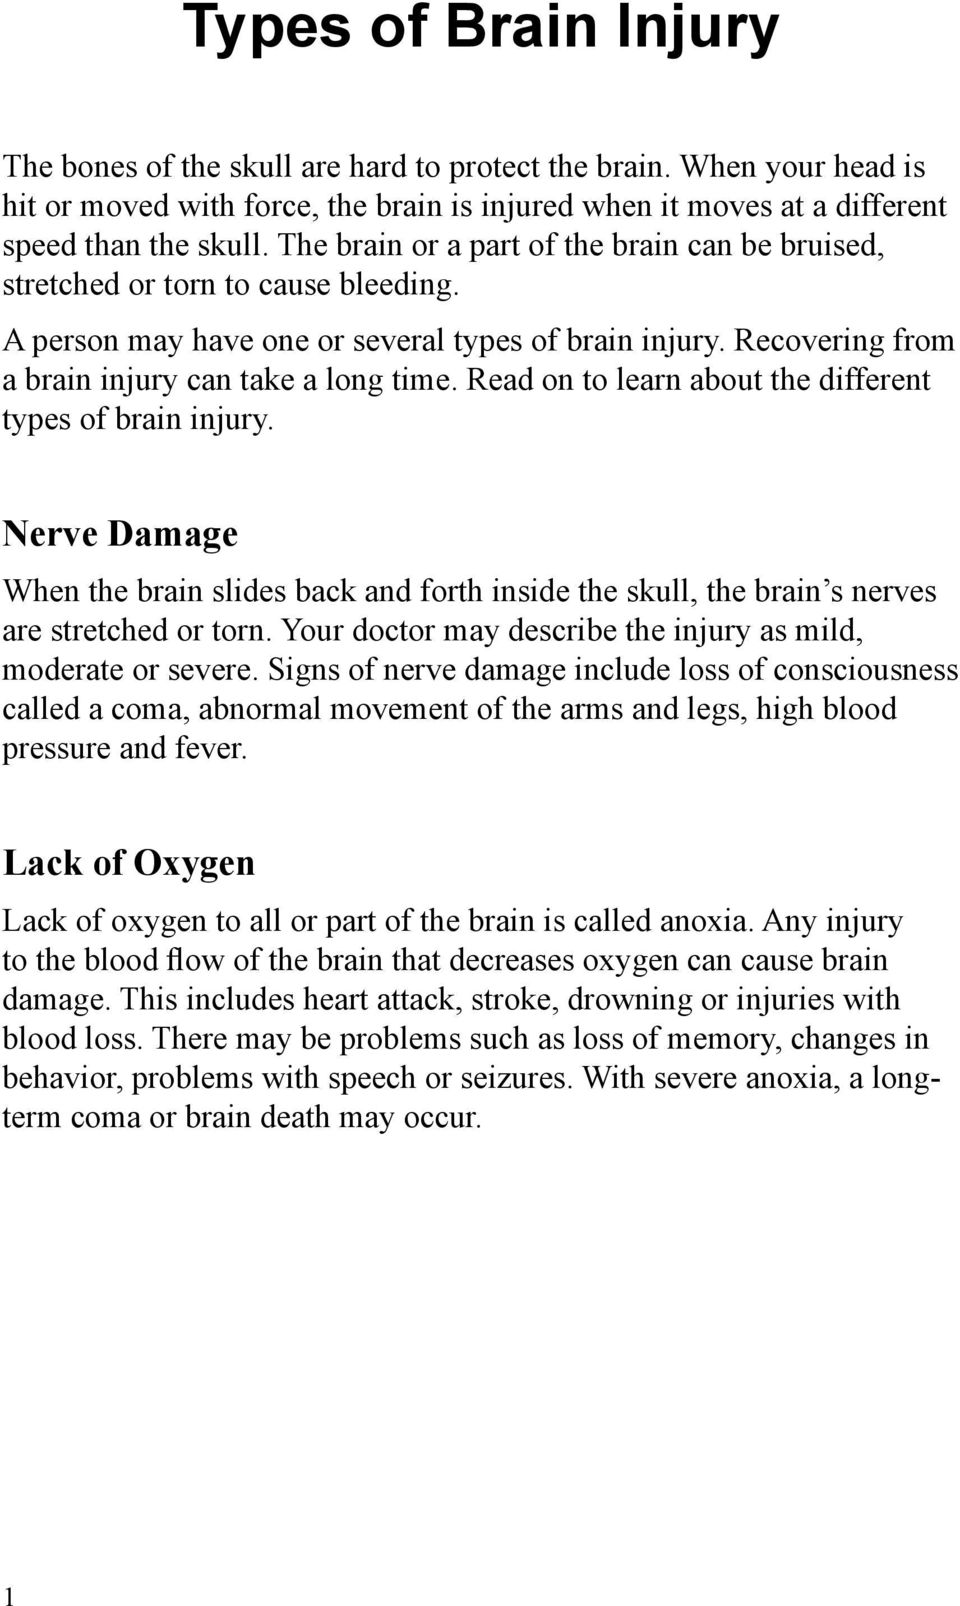 Read on to learn about the different types of brain injury. Nerve Damage When the brain slides back and forth inside the skull, the brain s nerves are stretched or torn.